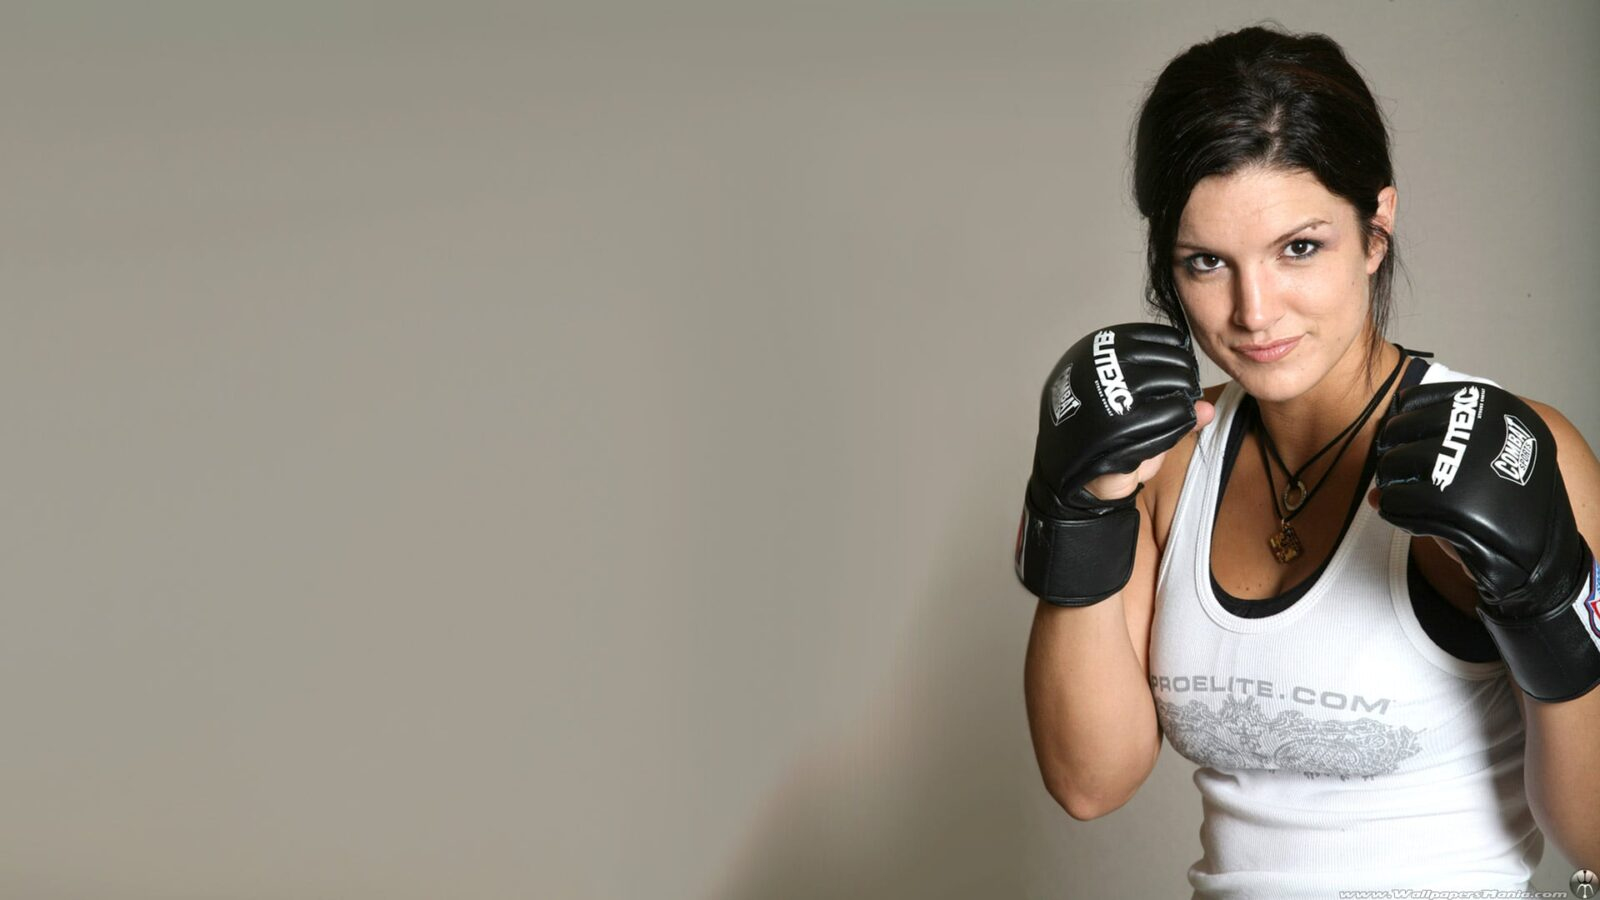 Wallpaper Anime Cute Gina Carano Wallpapers High Resolution Download